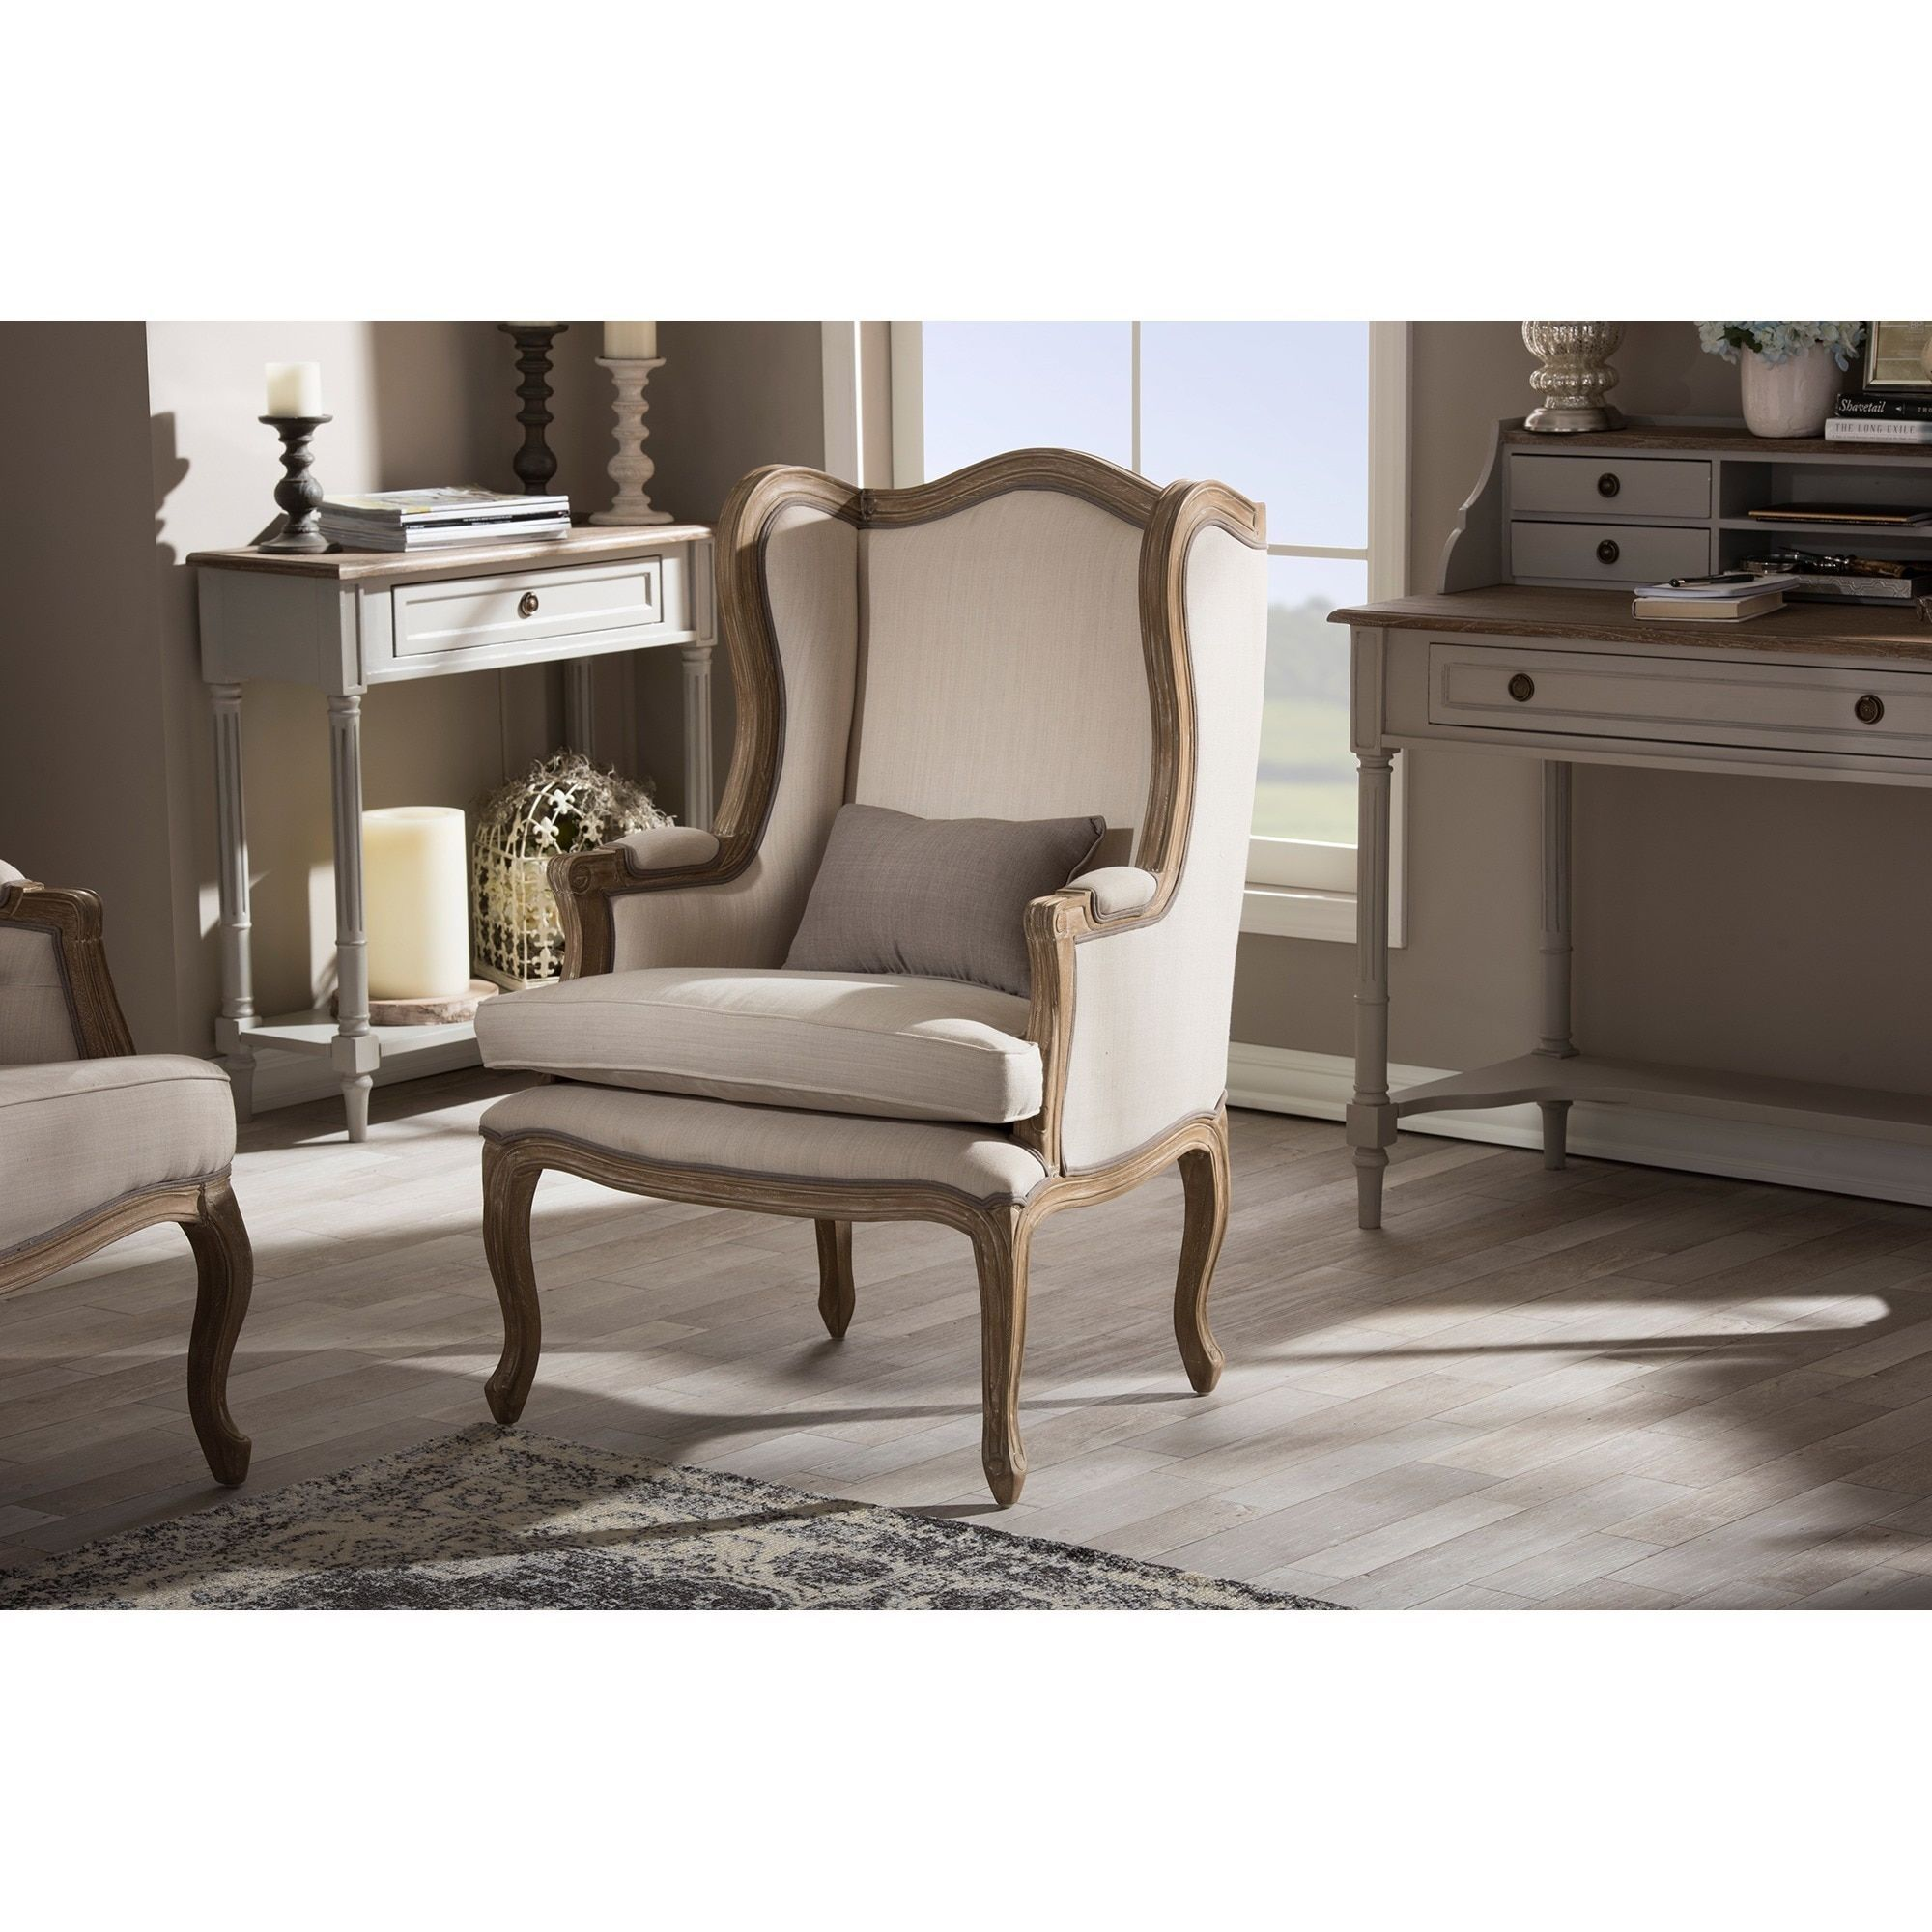 Baxton Studio Oreille French Provincial Style White Wash Distressed ...